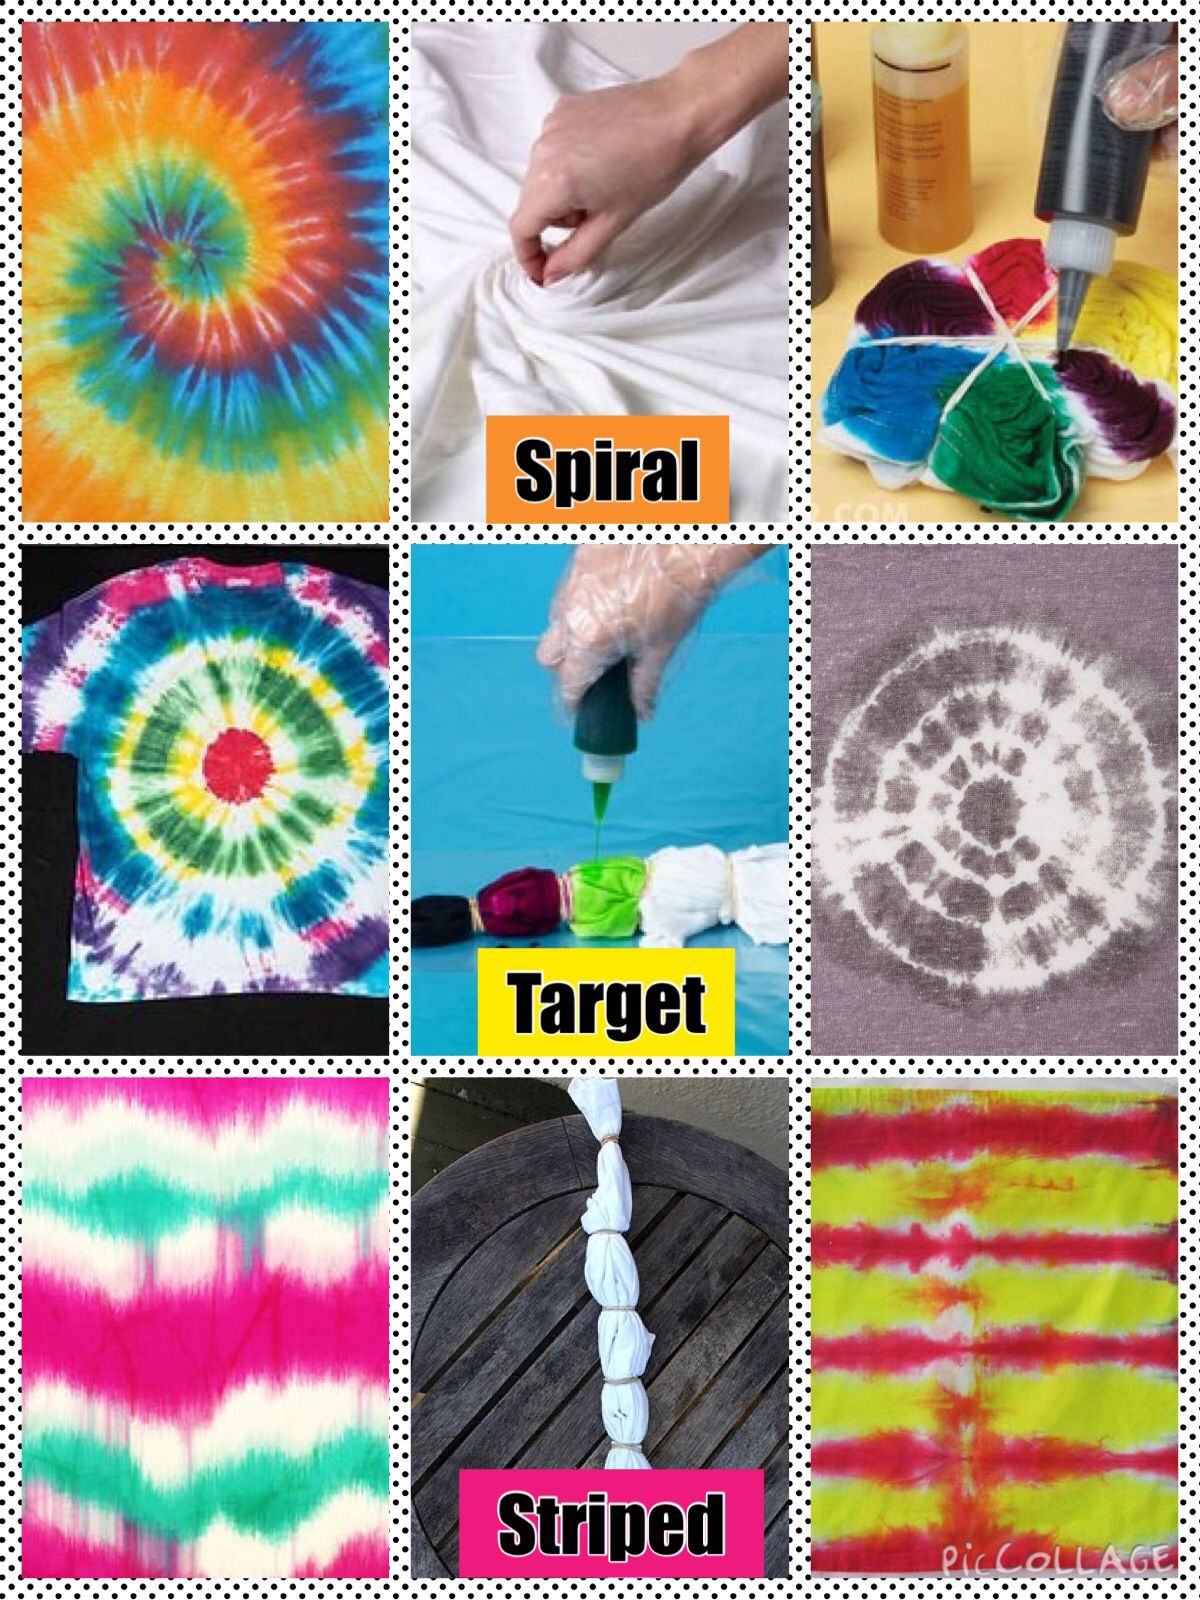 Teinture Tissu Tie Dye Techniques Things To Make Teinture Teinture Vetement